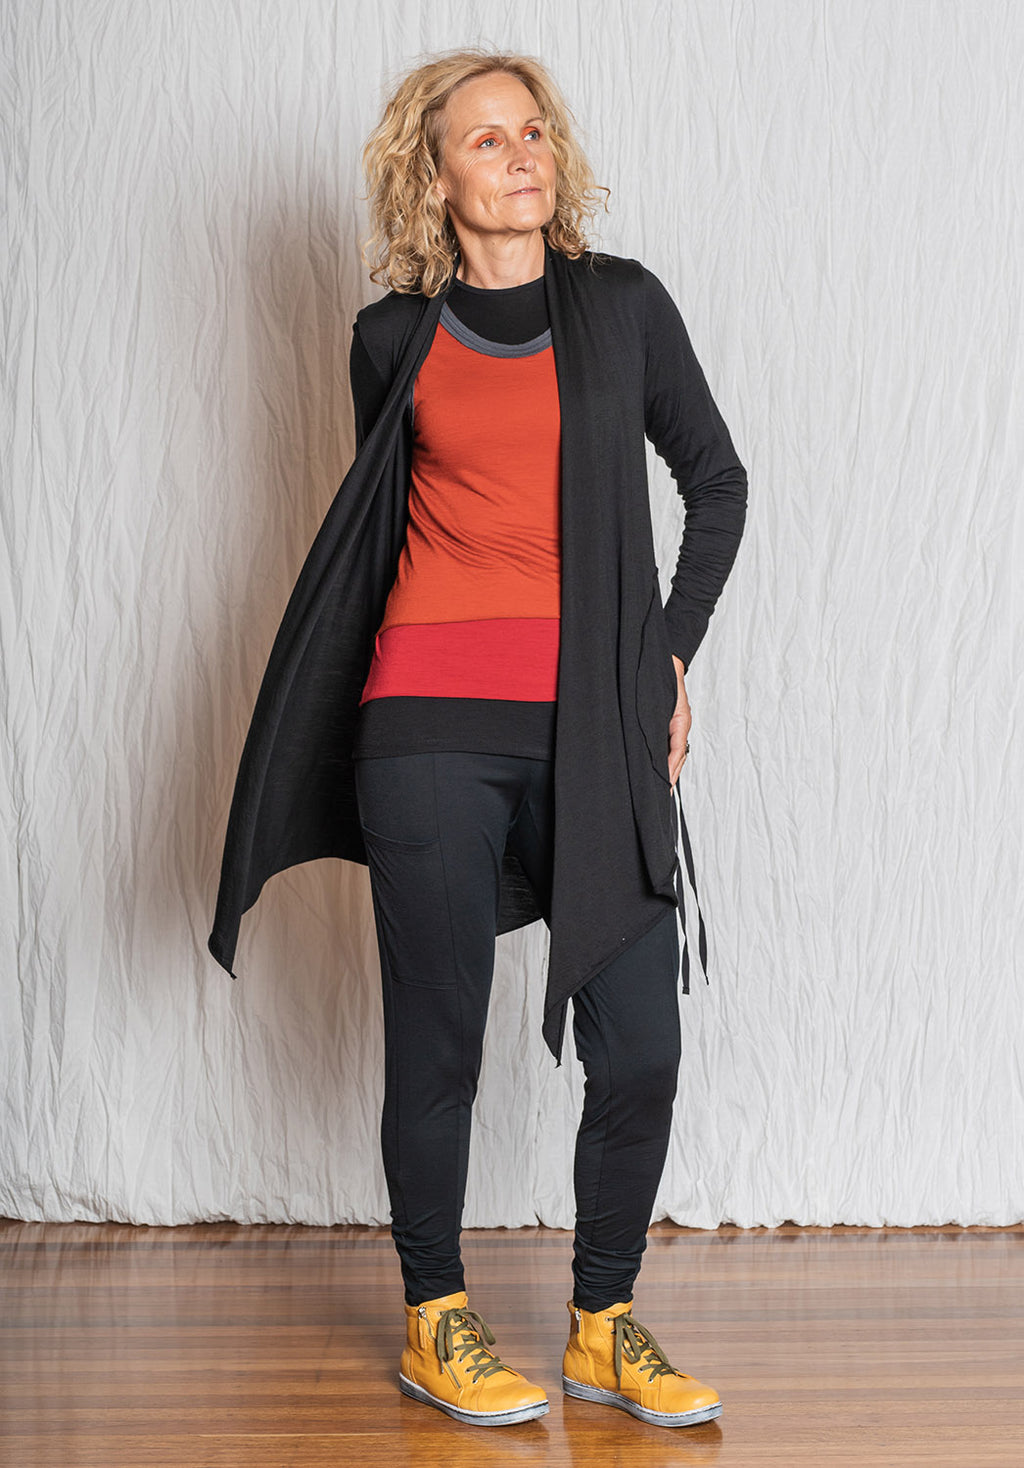 australian wool clothes, australian fashion online, 100% ethical fashion, 100% made in australia, australian fashion designer, australian wool fashion, ethical clothing australia,